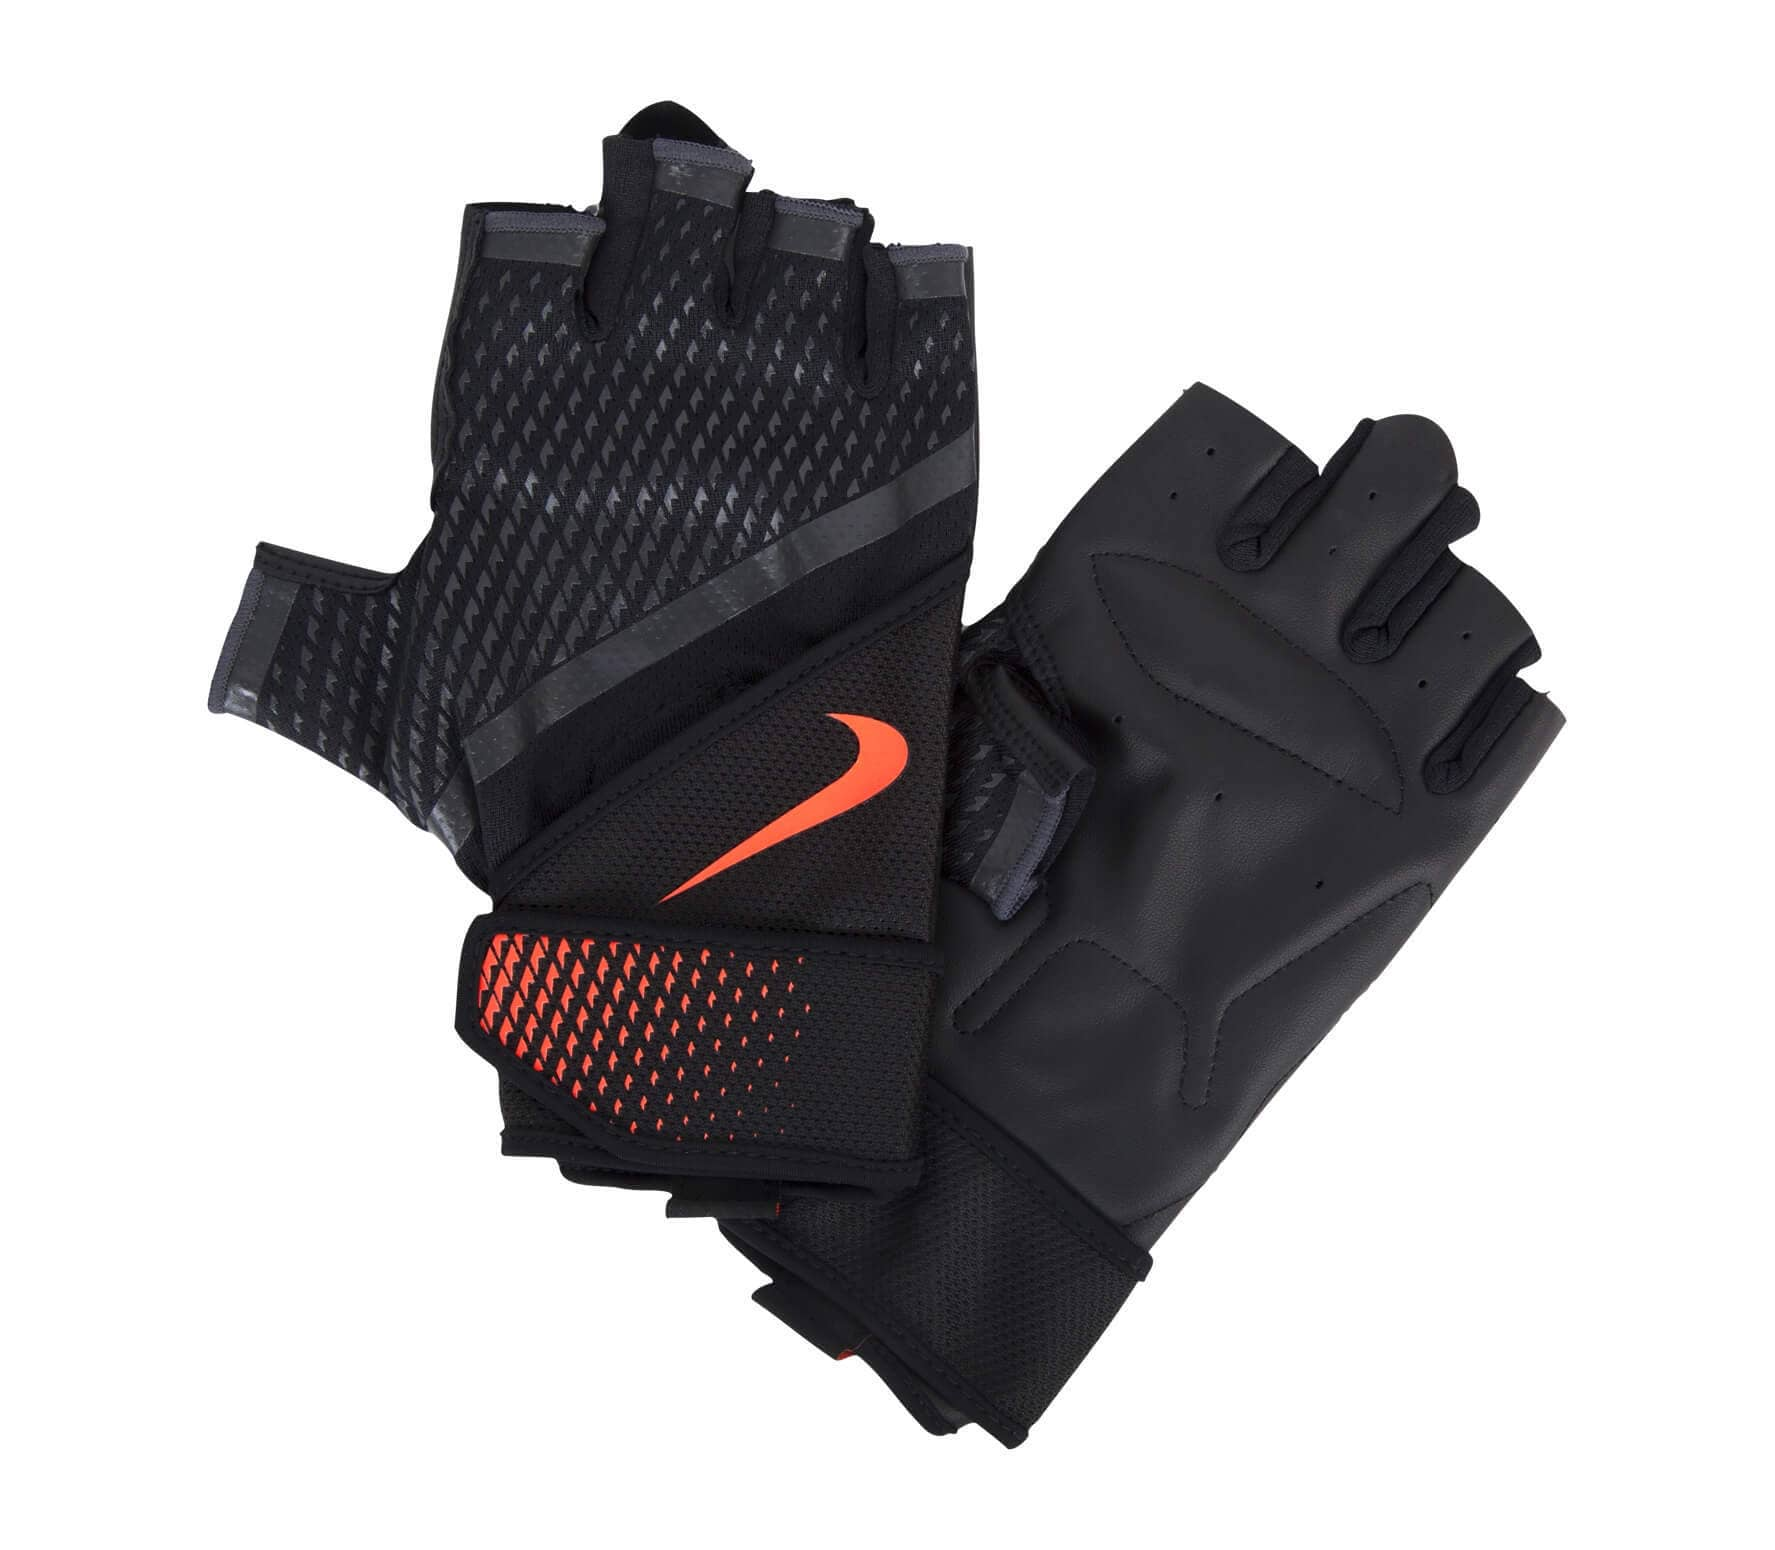 Nike Men S Destroyer Training Gloves: Mens Destroyer Training Gloves (black/orange)